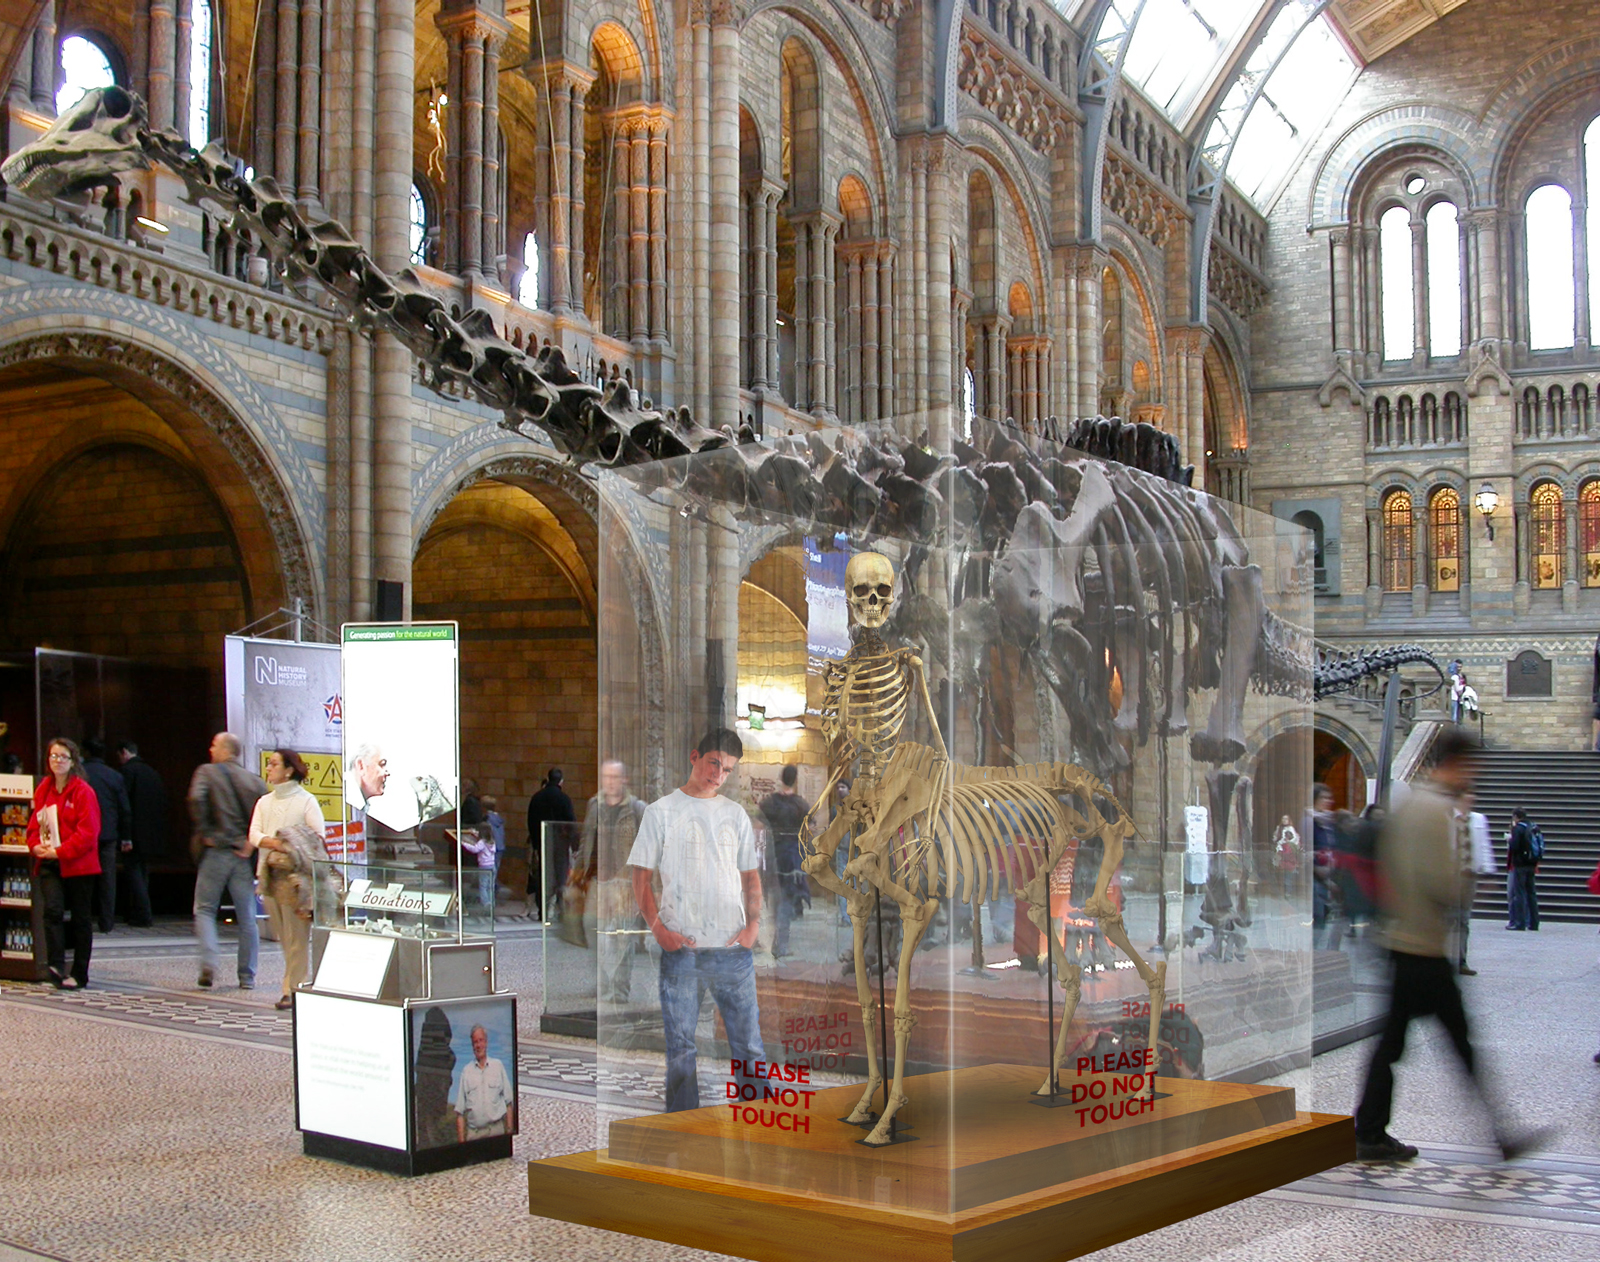 Centaur skeleton at The Natural History Museum, London